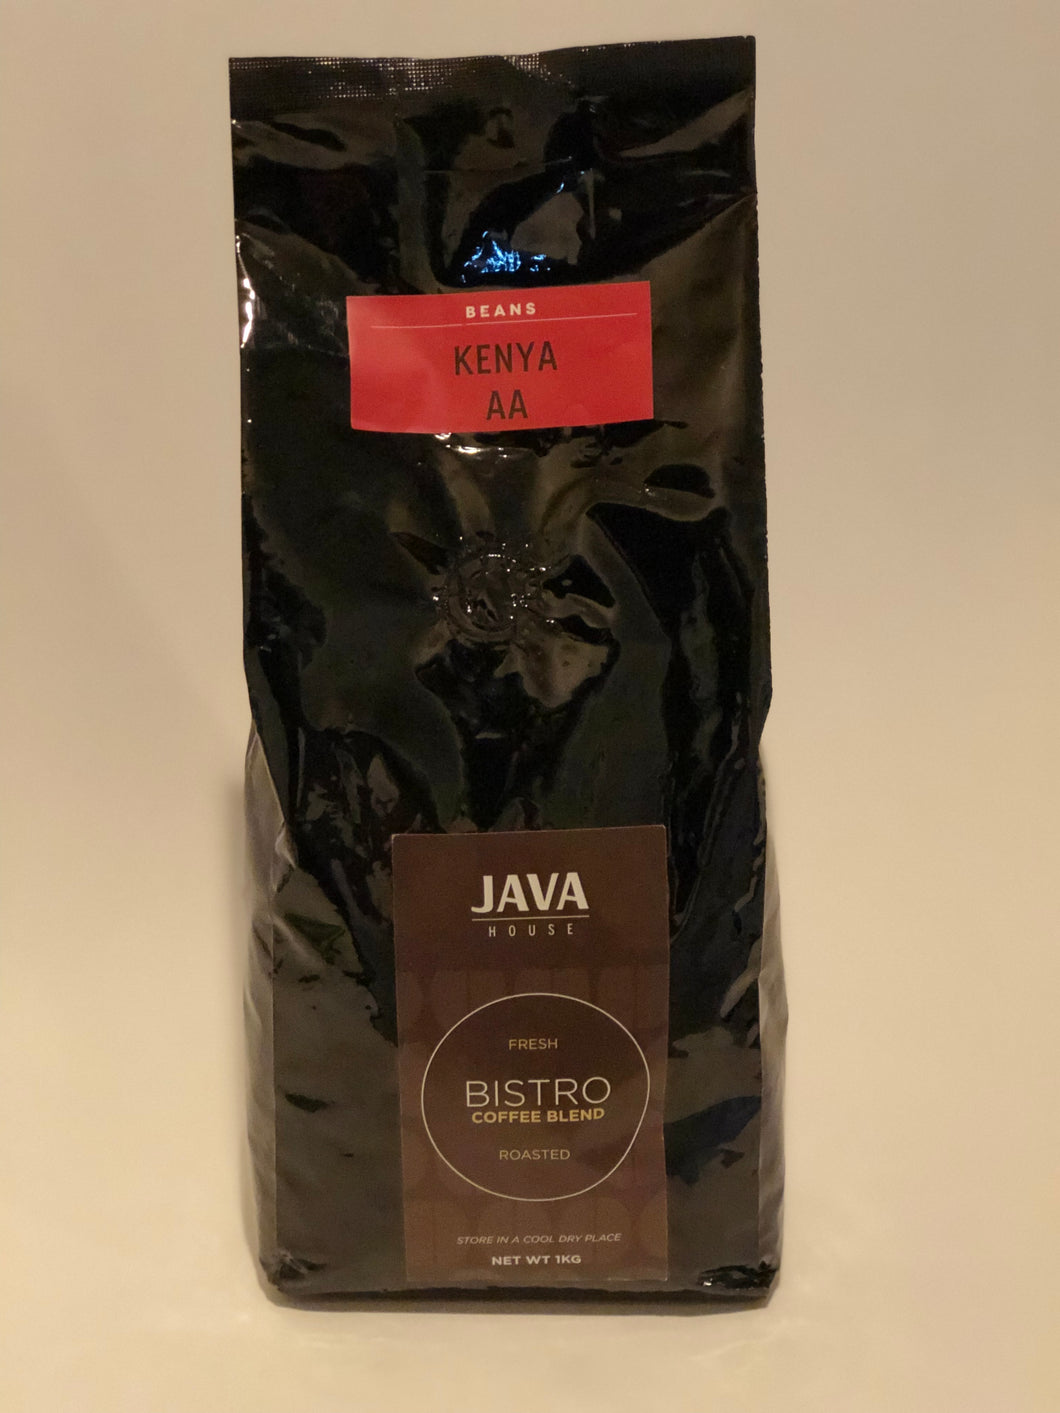 Java House - Kenya AA Coffee Beans